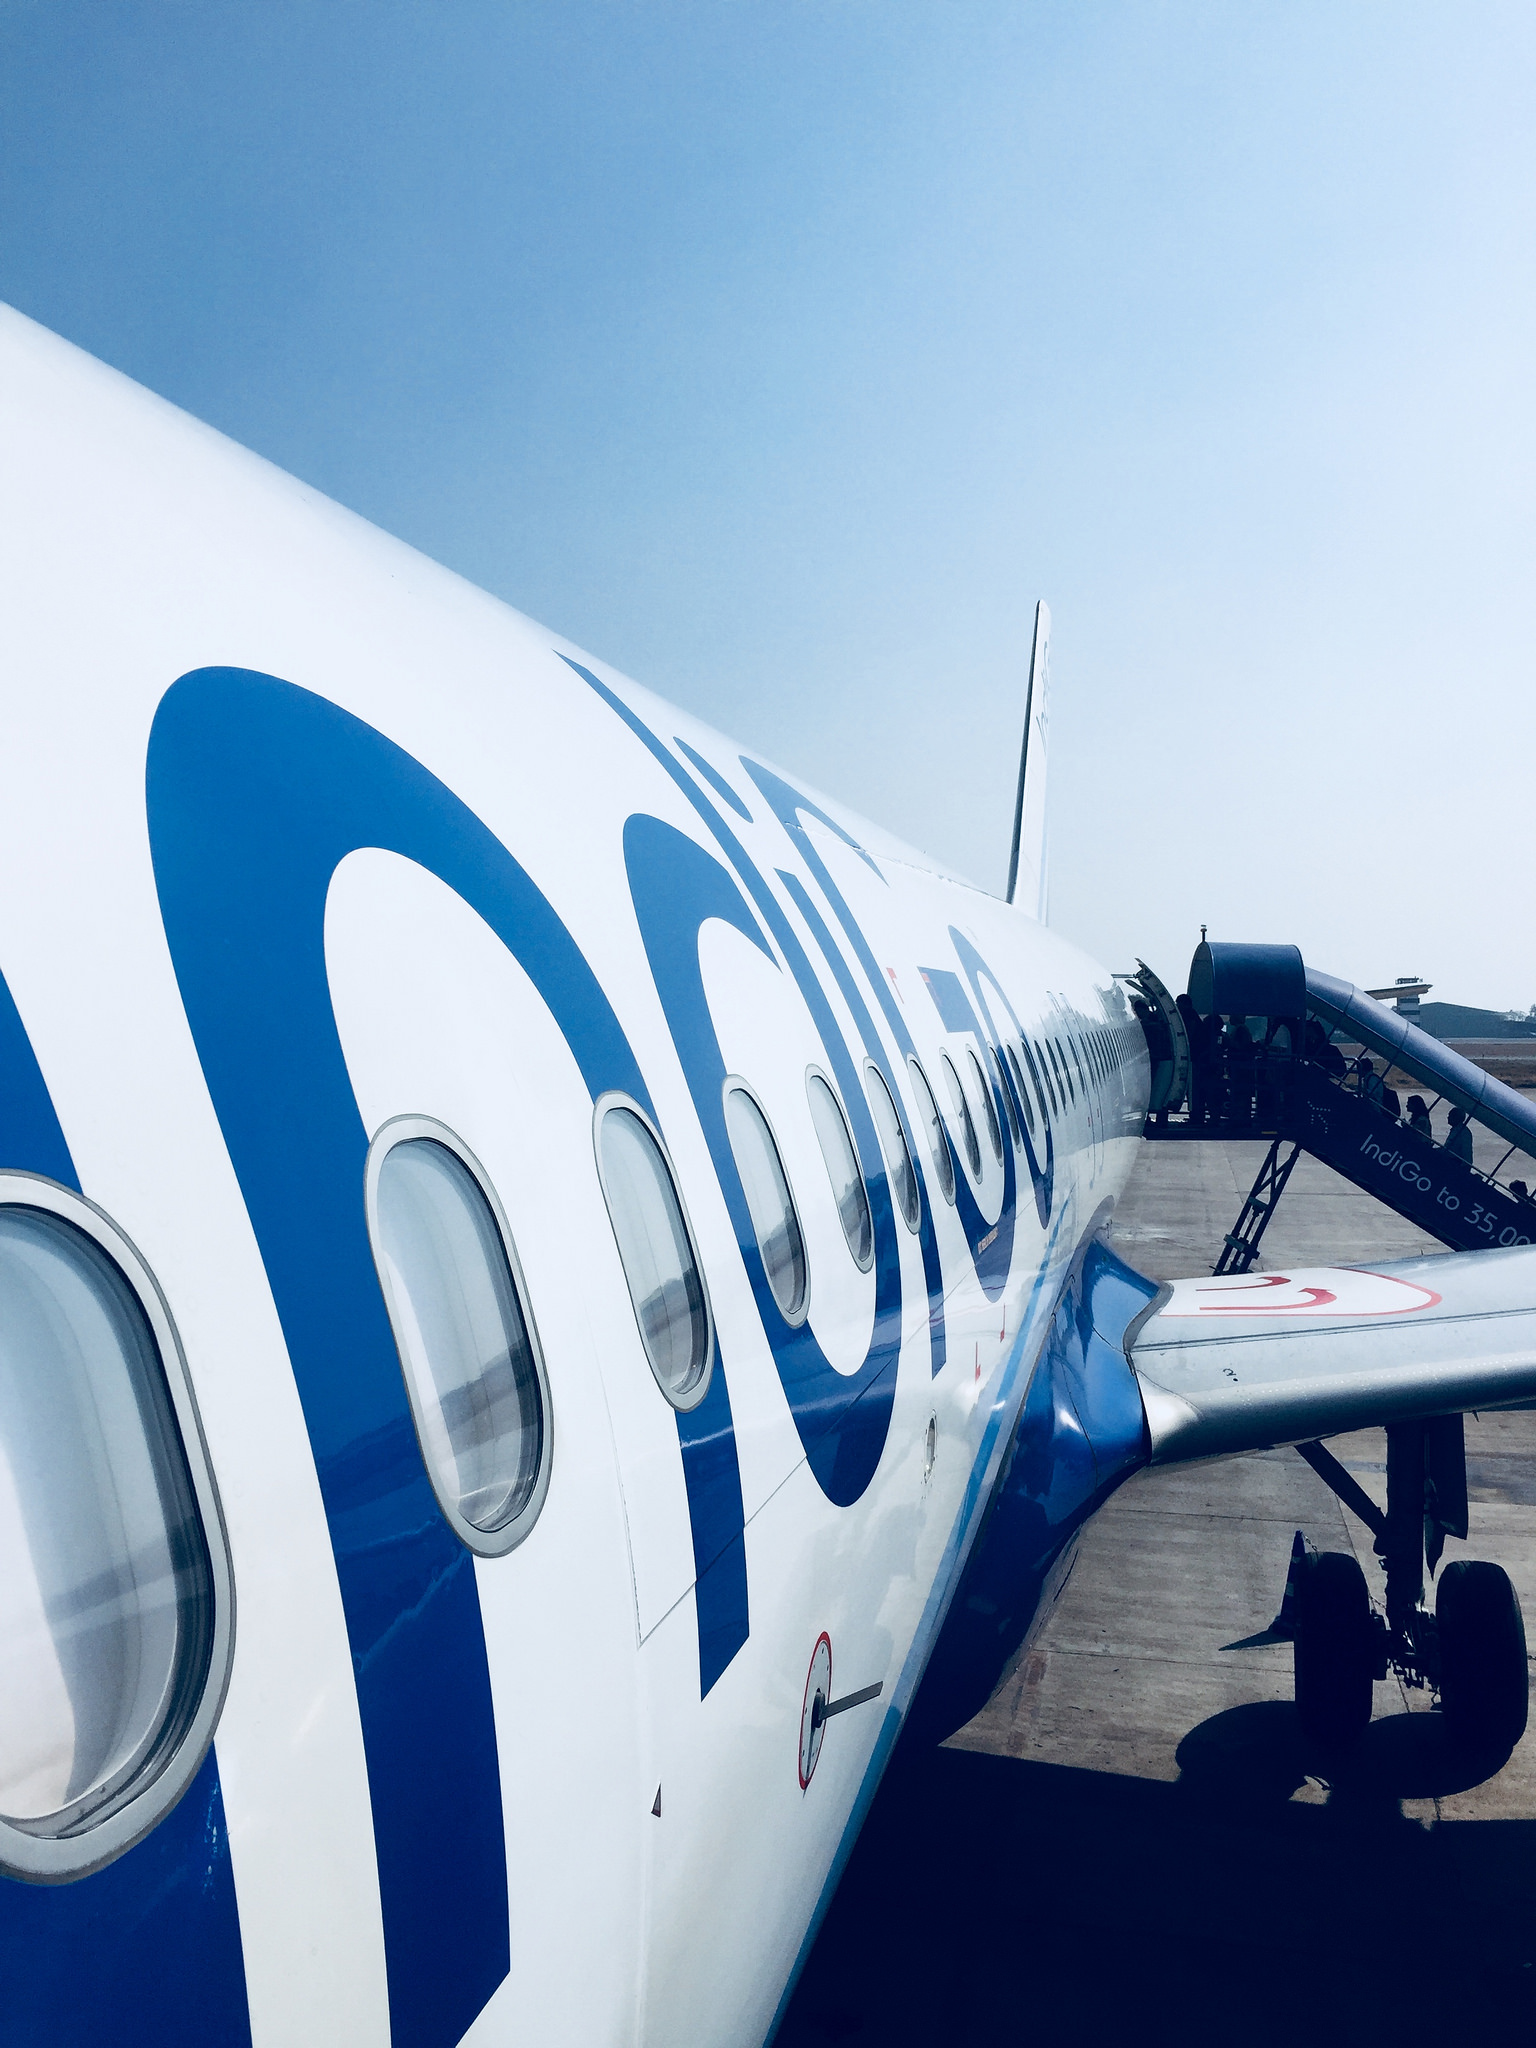 Families or people travelling in a group on Indigo flights will be allotted scattered seats if they do not pay extra to get seats together